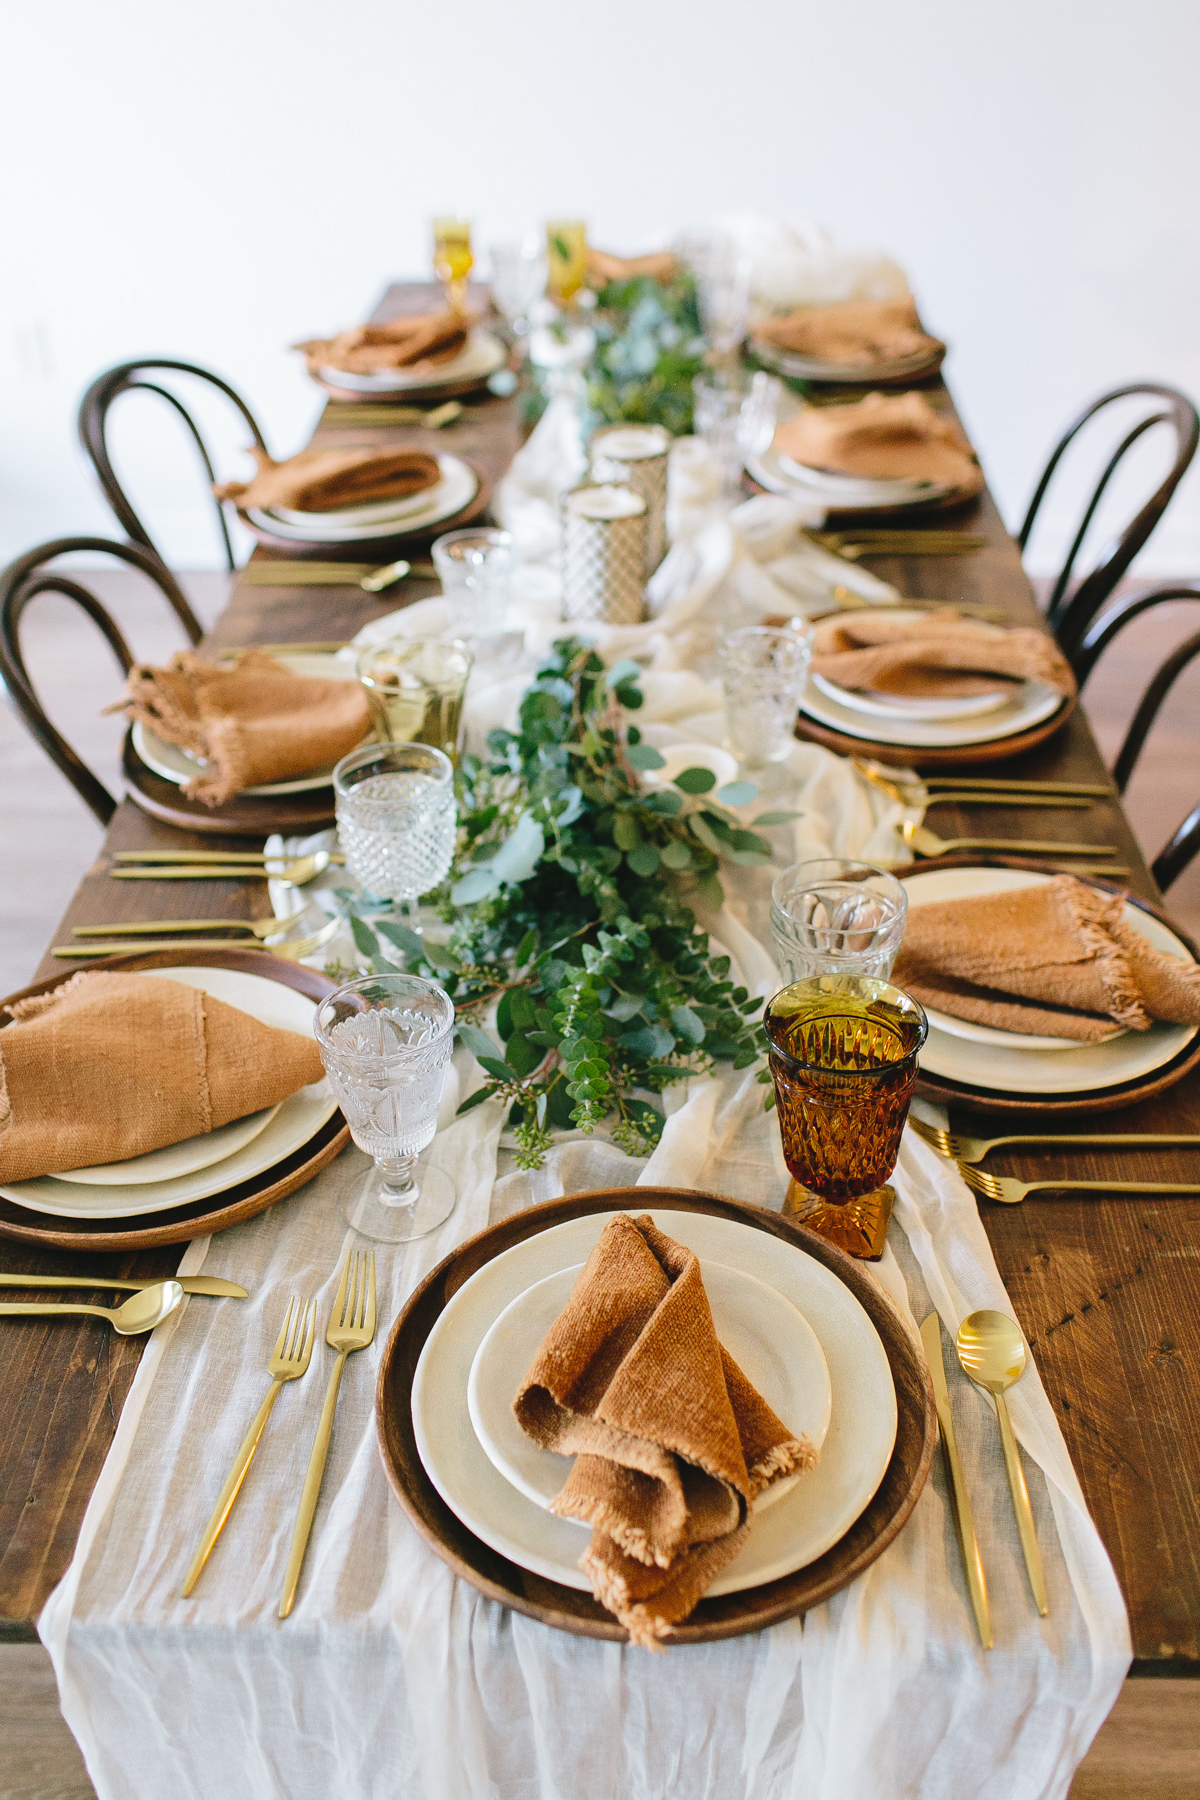 livvyland-blog-olivia-watson-zilkr-condo-loot-vintage-friendsgiving-tablescape-table-setup-idea-5